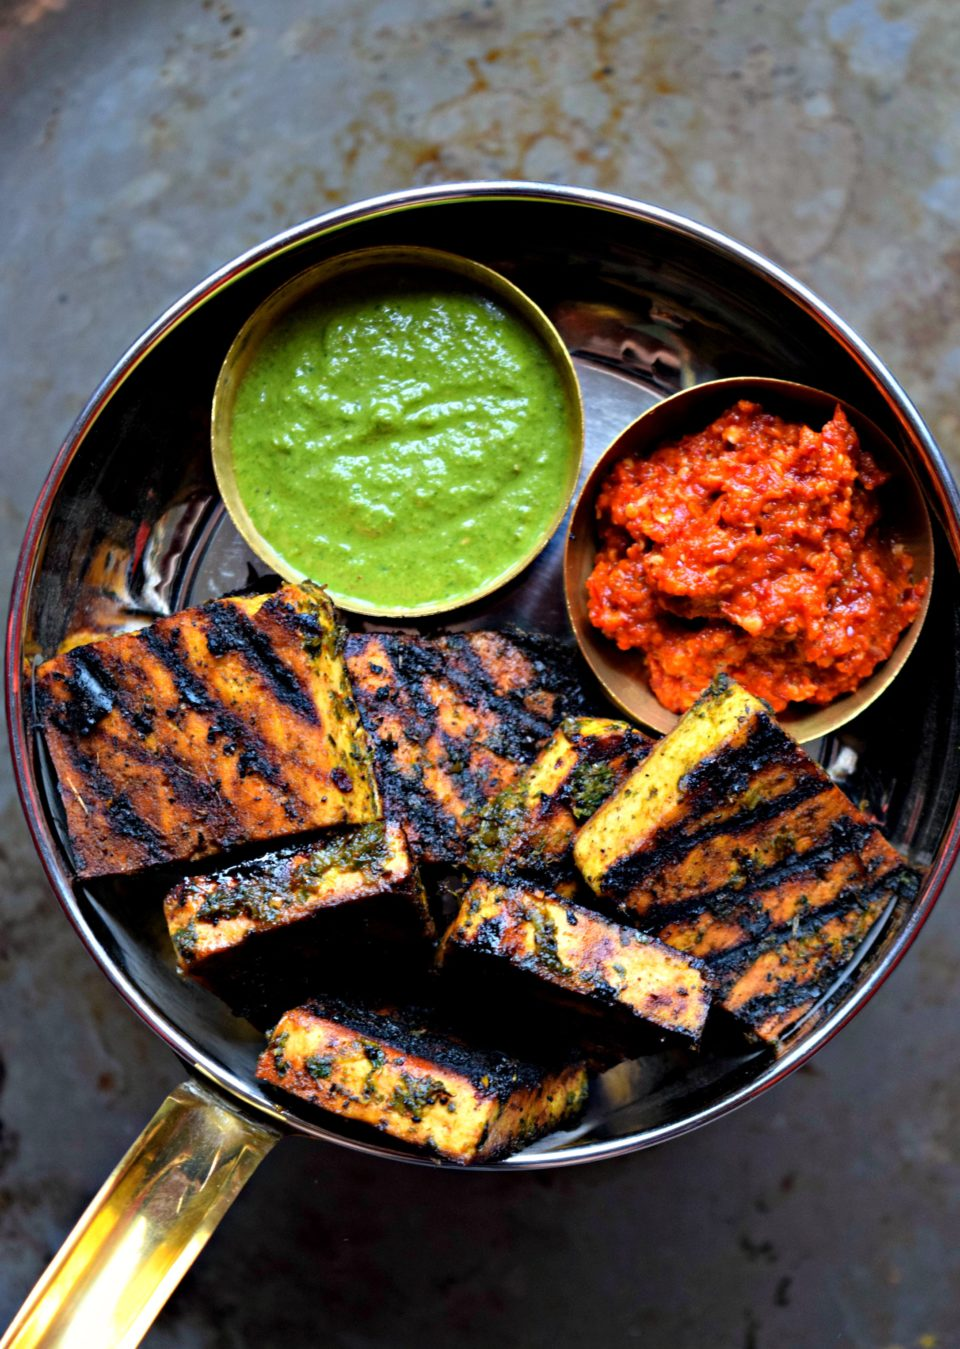 A delicious snack for Summer! Grilled tofu is marinated with basil & garlic sauce & served with chutney. Loaded with proteins, this grilled dish is yummy!